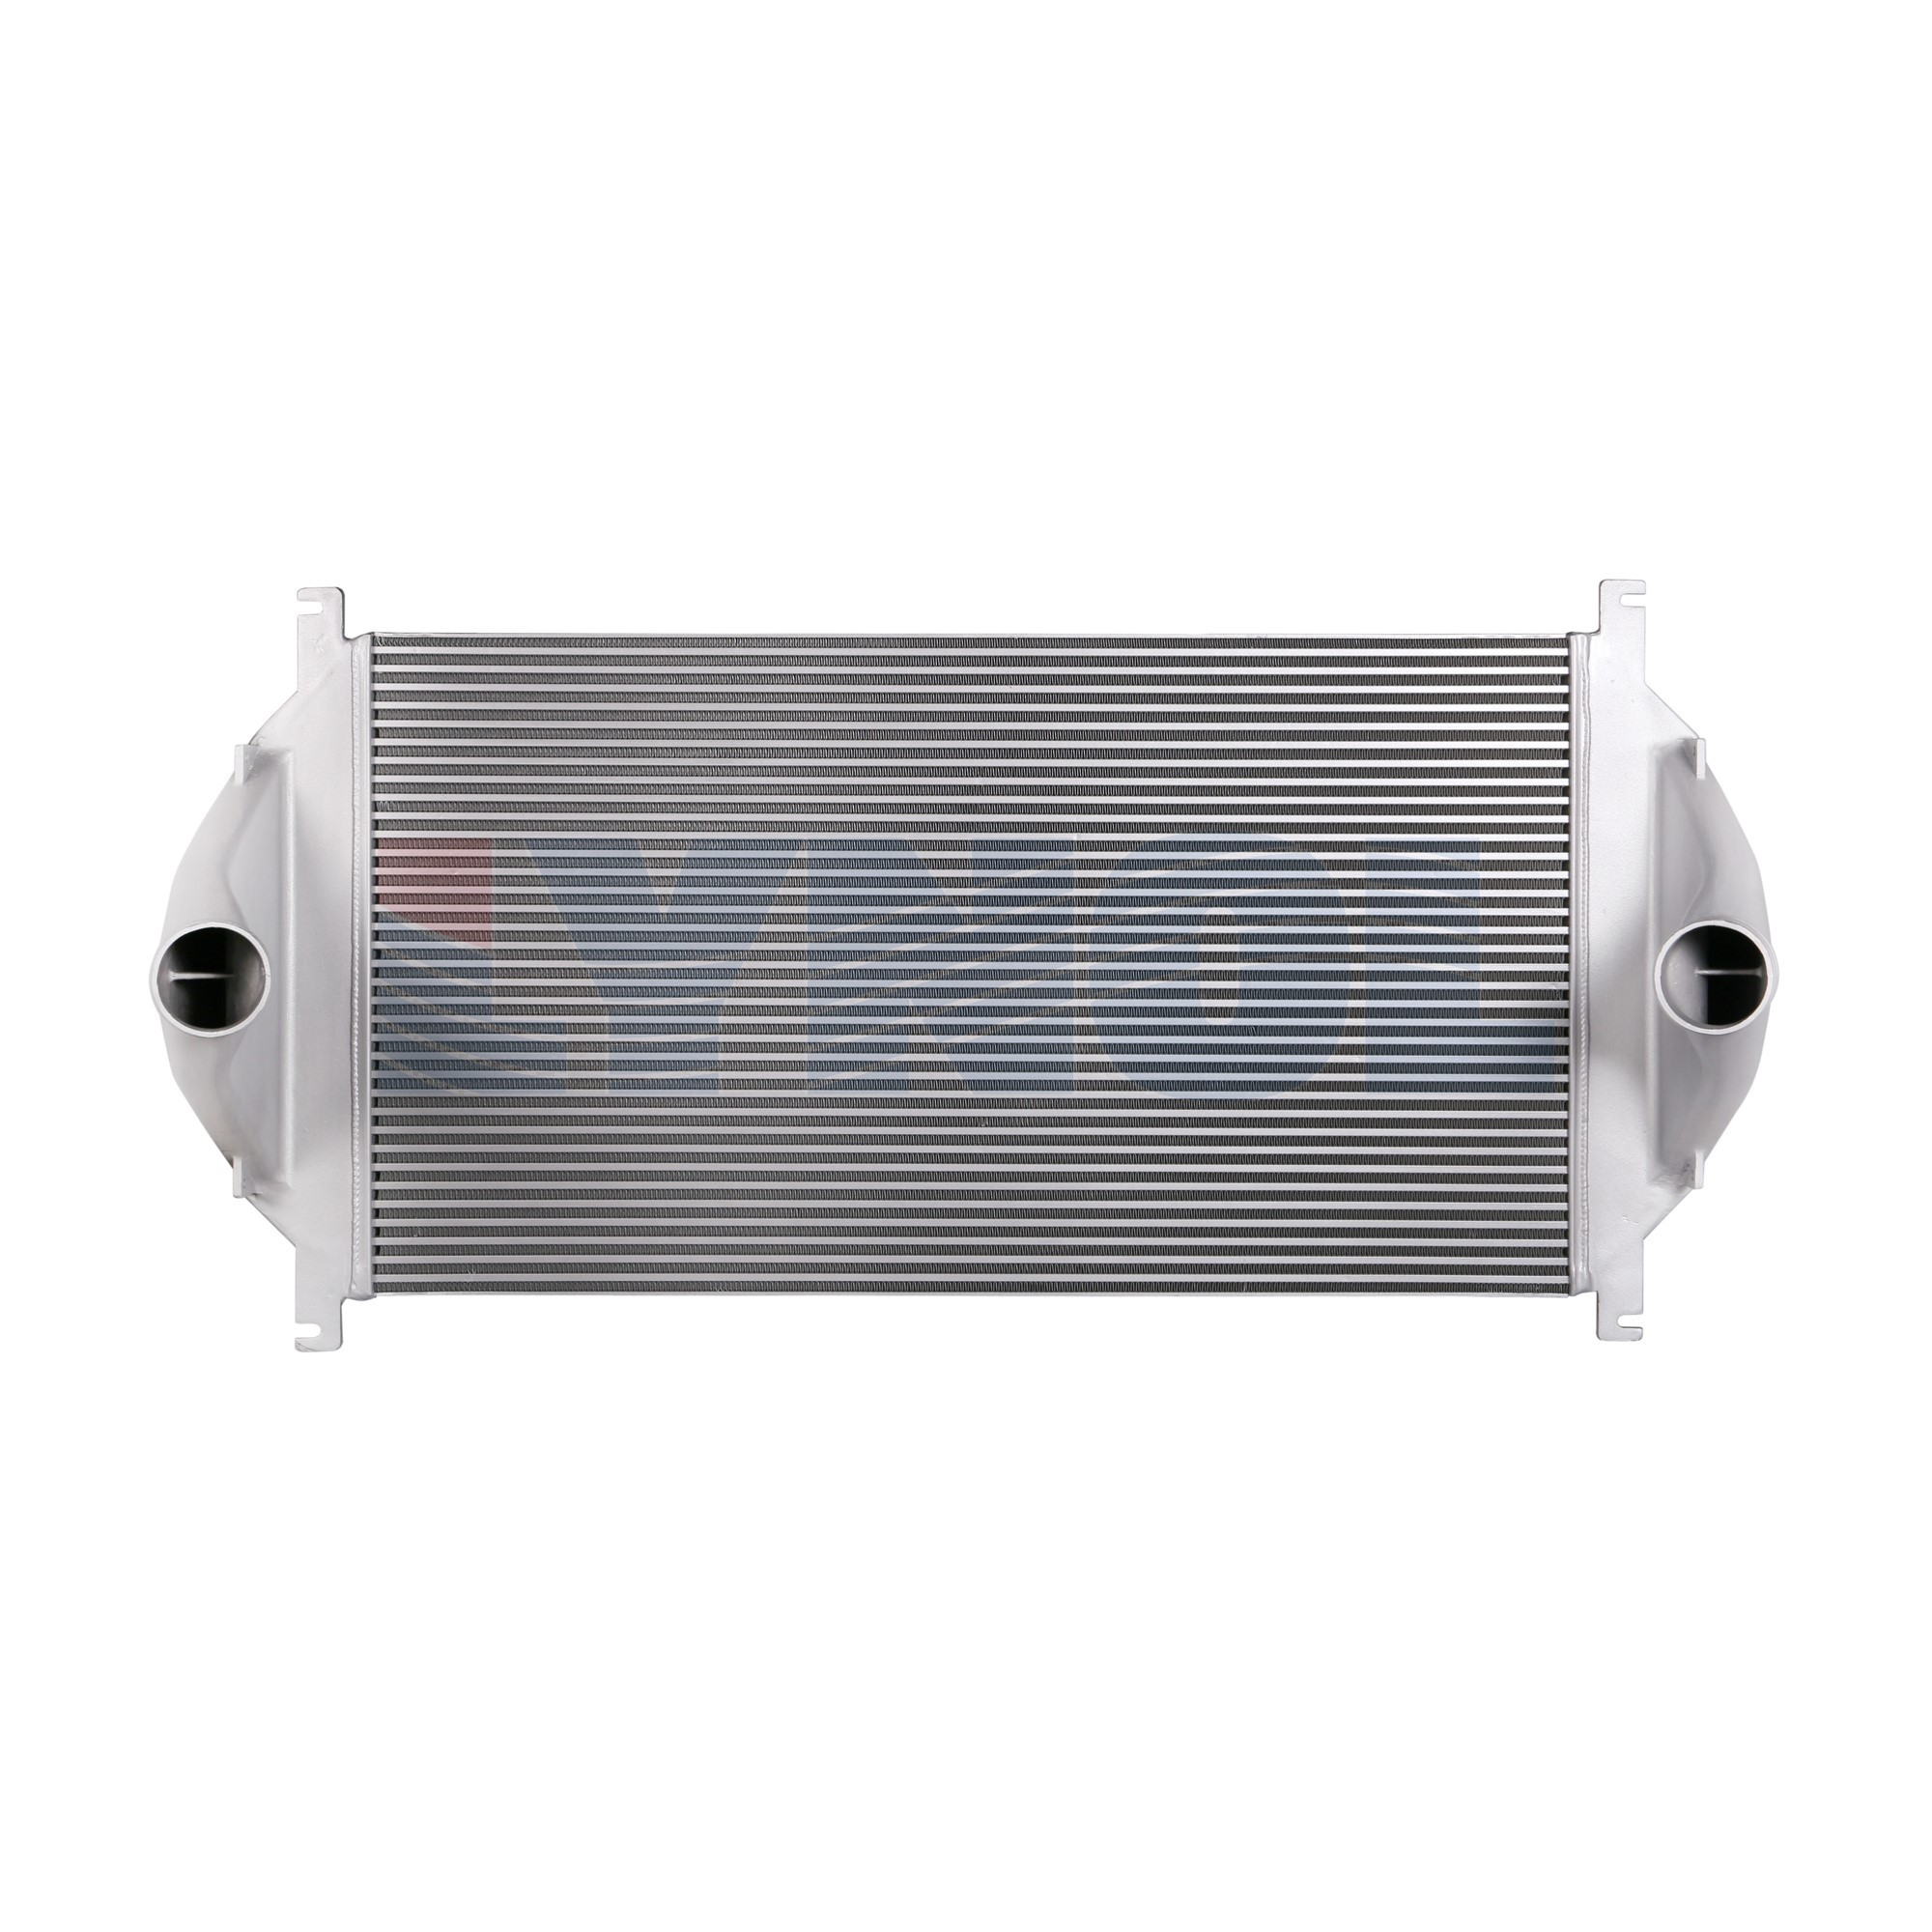 2408-011 - International / Navistar Charge Air Cooler